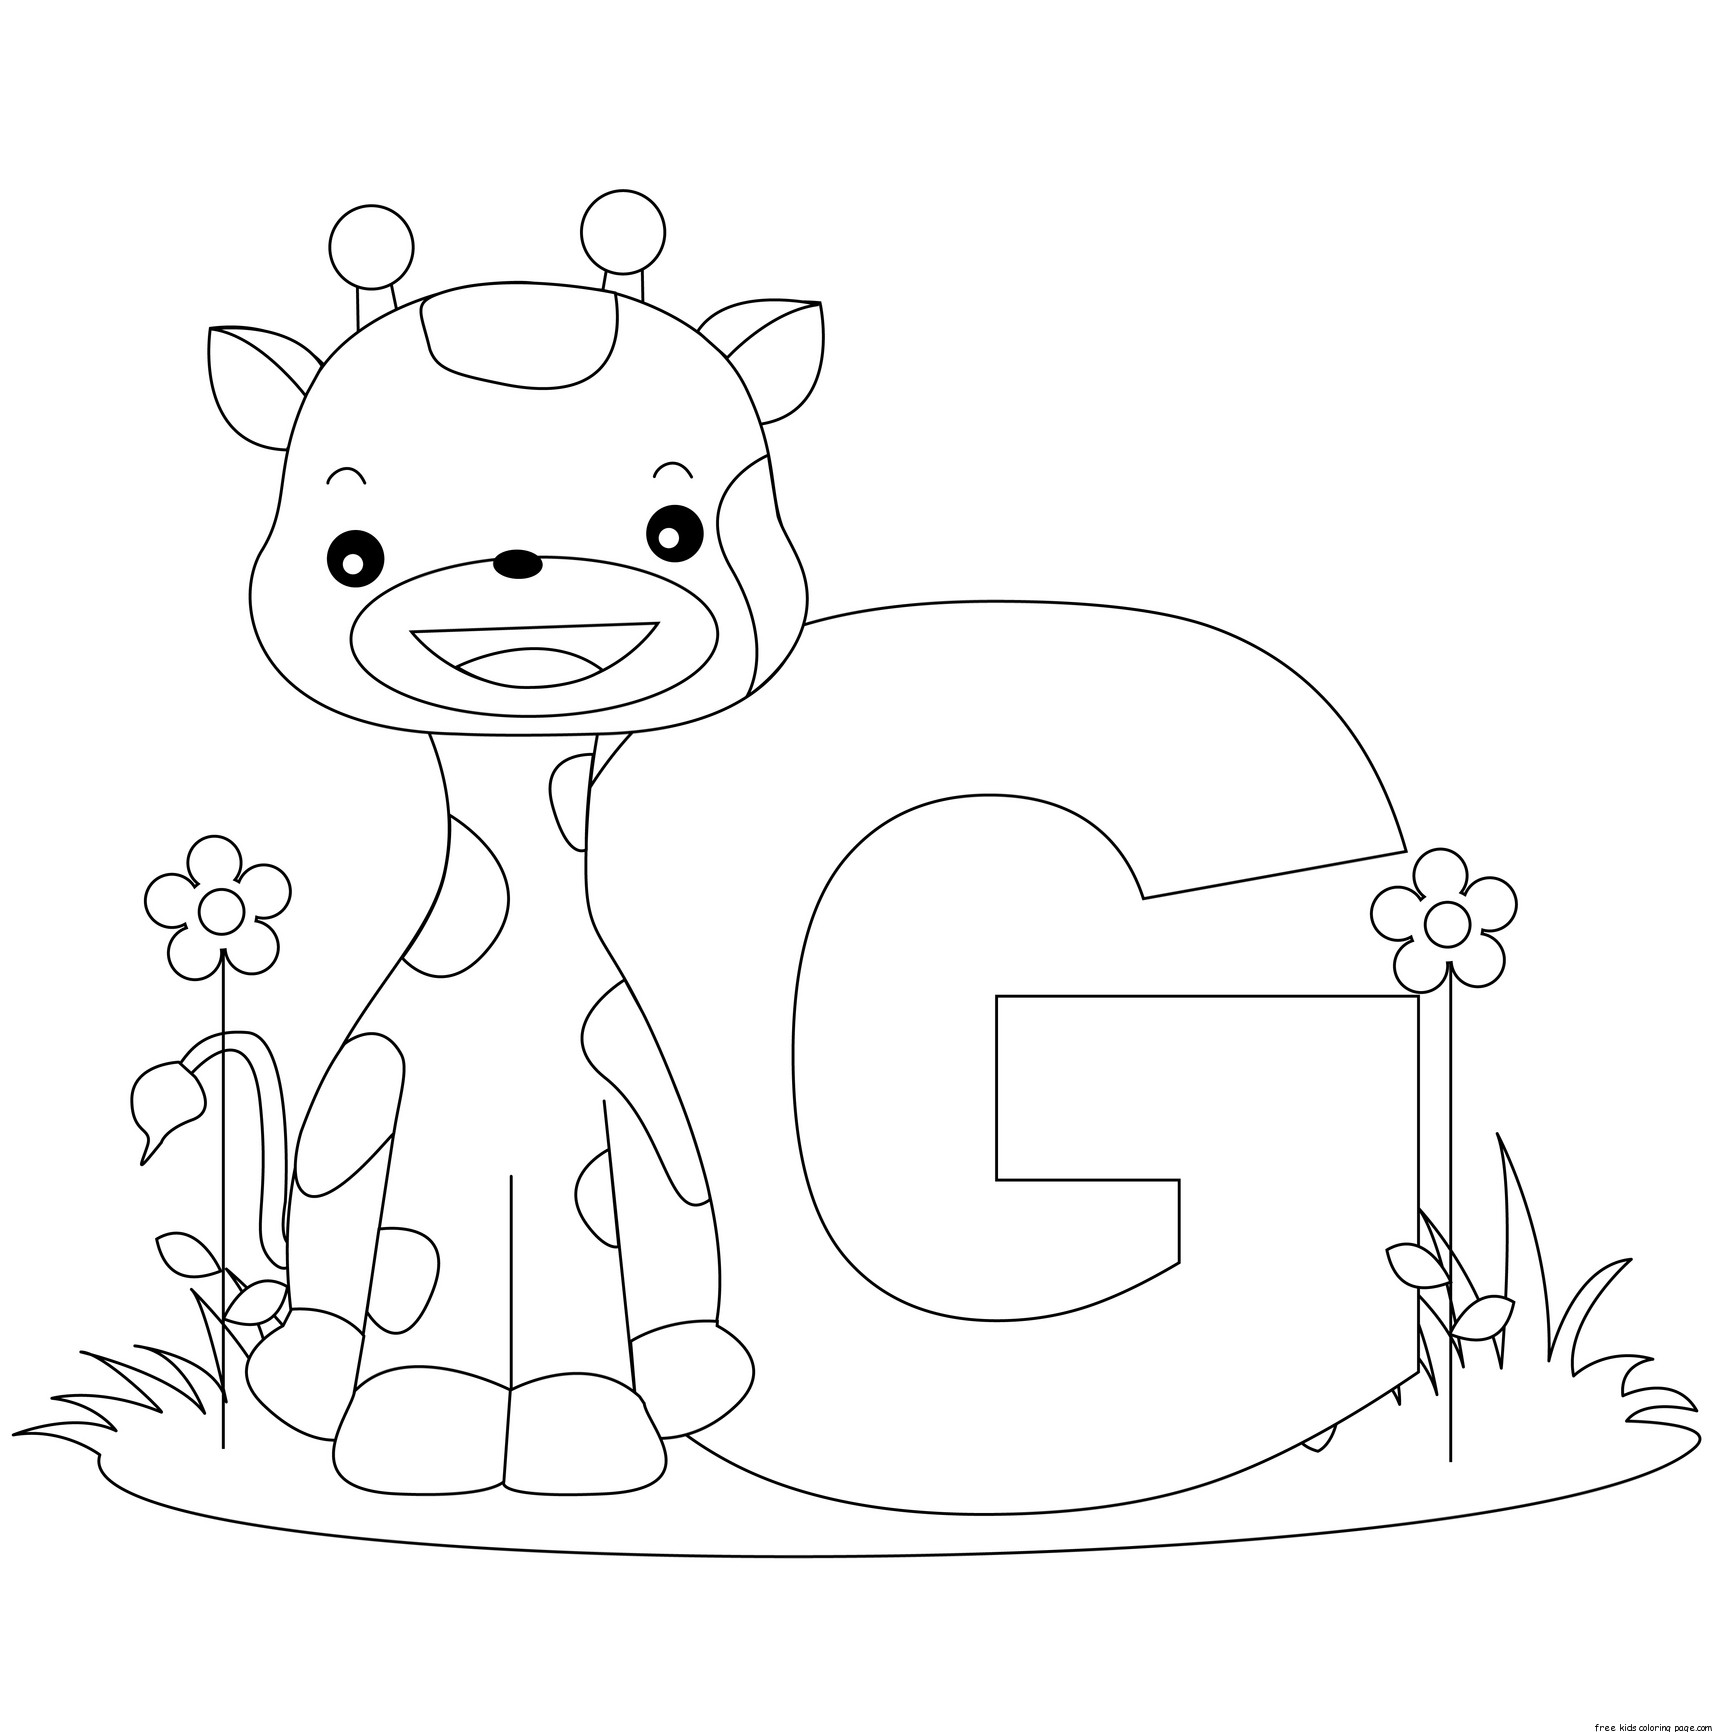 Alphabet Letter G For Preschool Activities Worksheetsfree Printable Coloring Pages For Kids